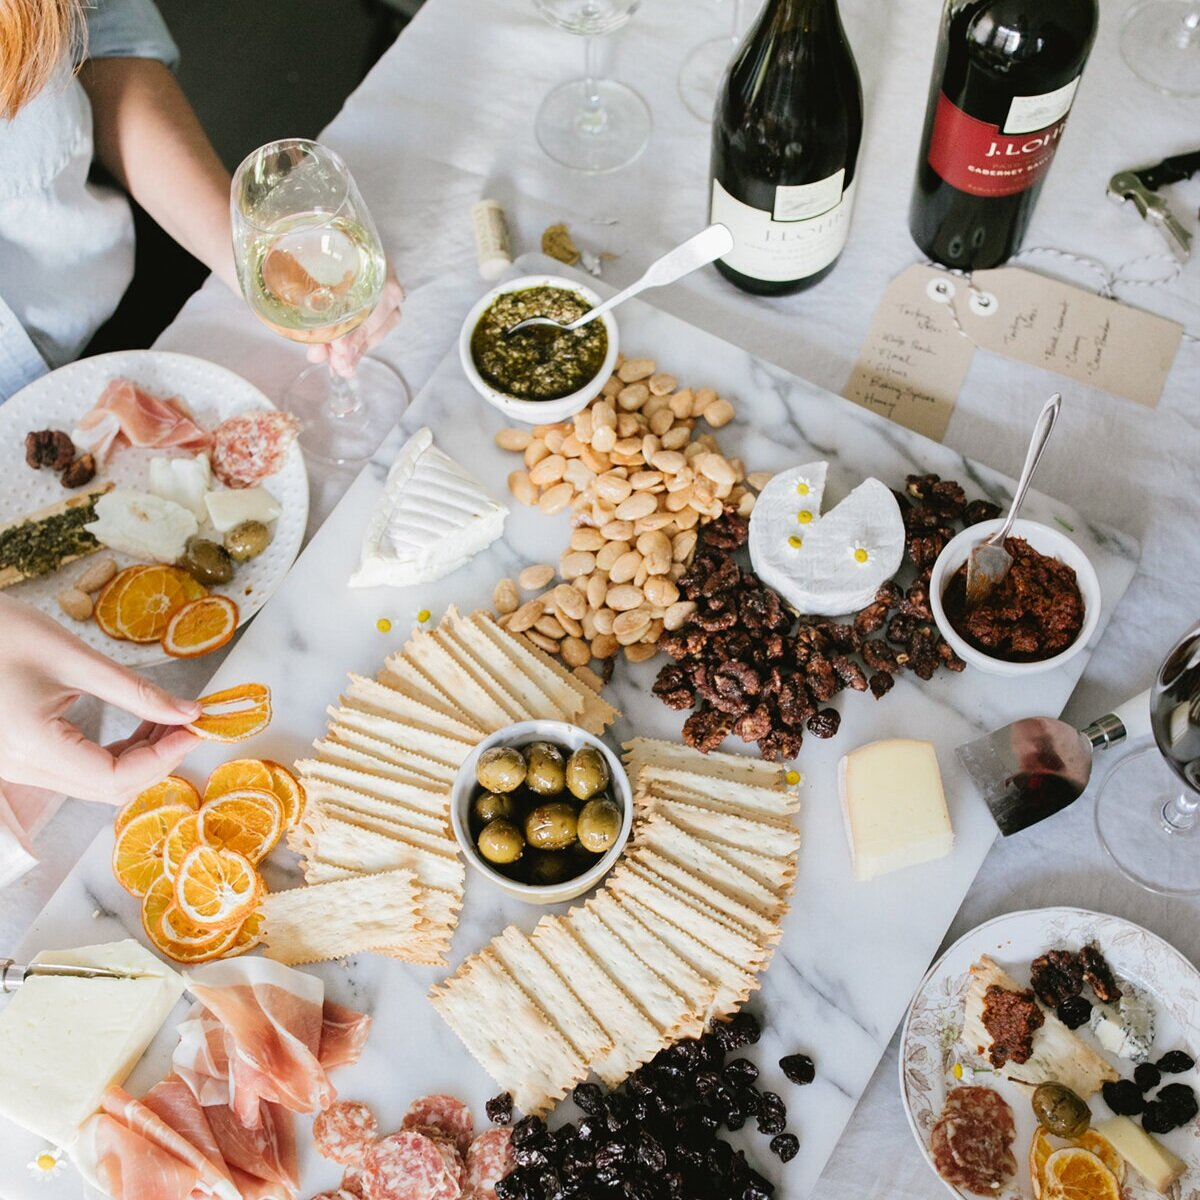 a-wine-and-cheese-pairing-guide-for-white-and-red-wine-tasting-party-on-coco-kelley-10.jpg